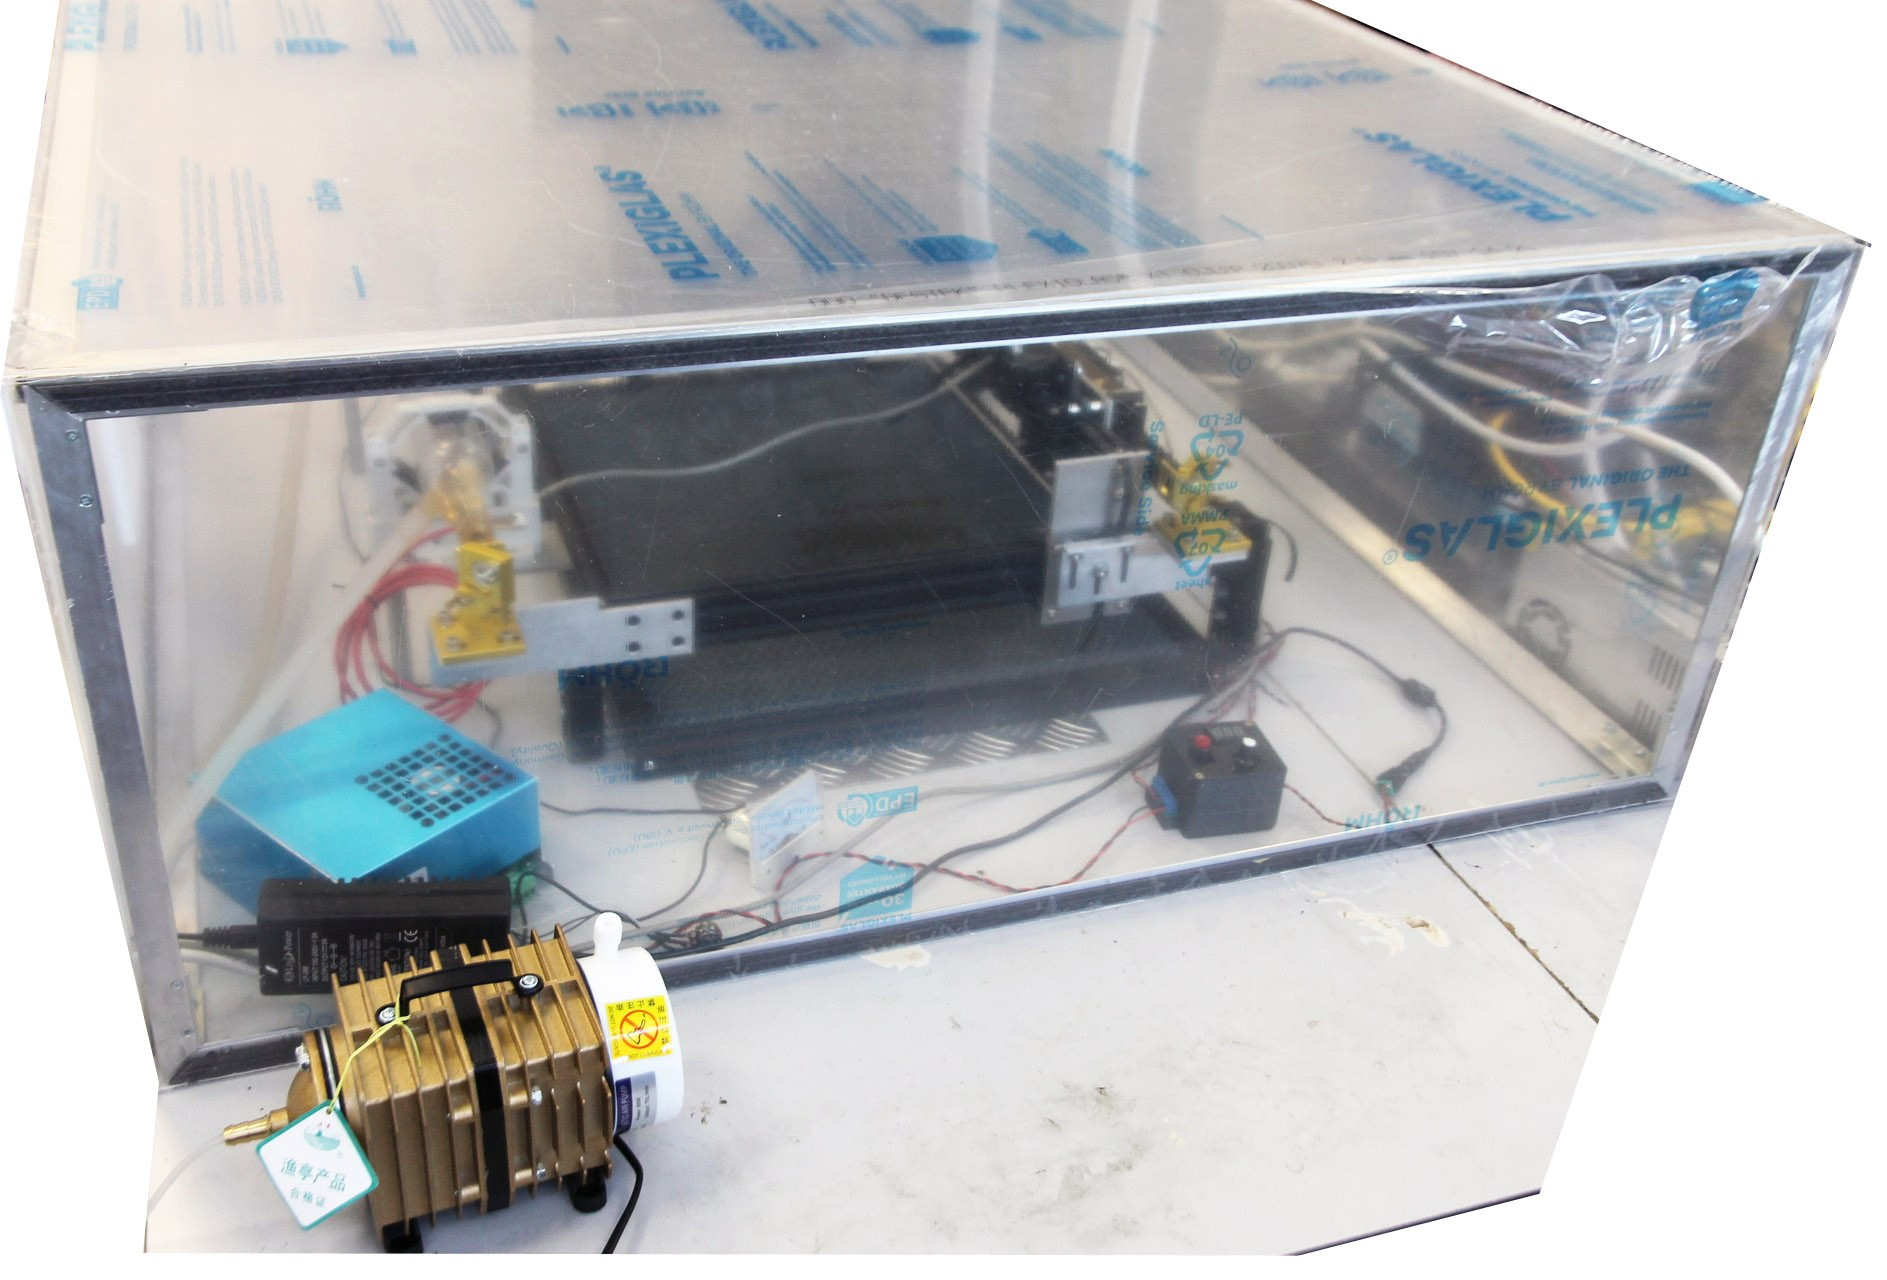 laser protective box (enclosure) for your laser engraving / cutting machine